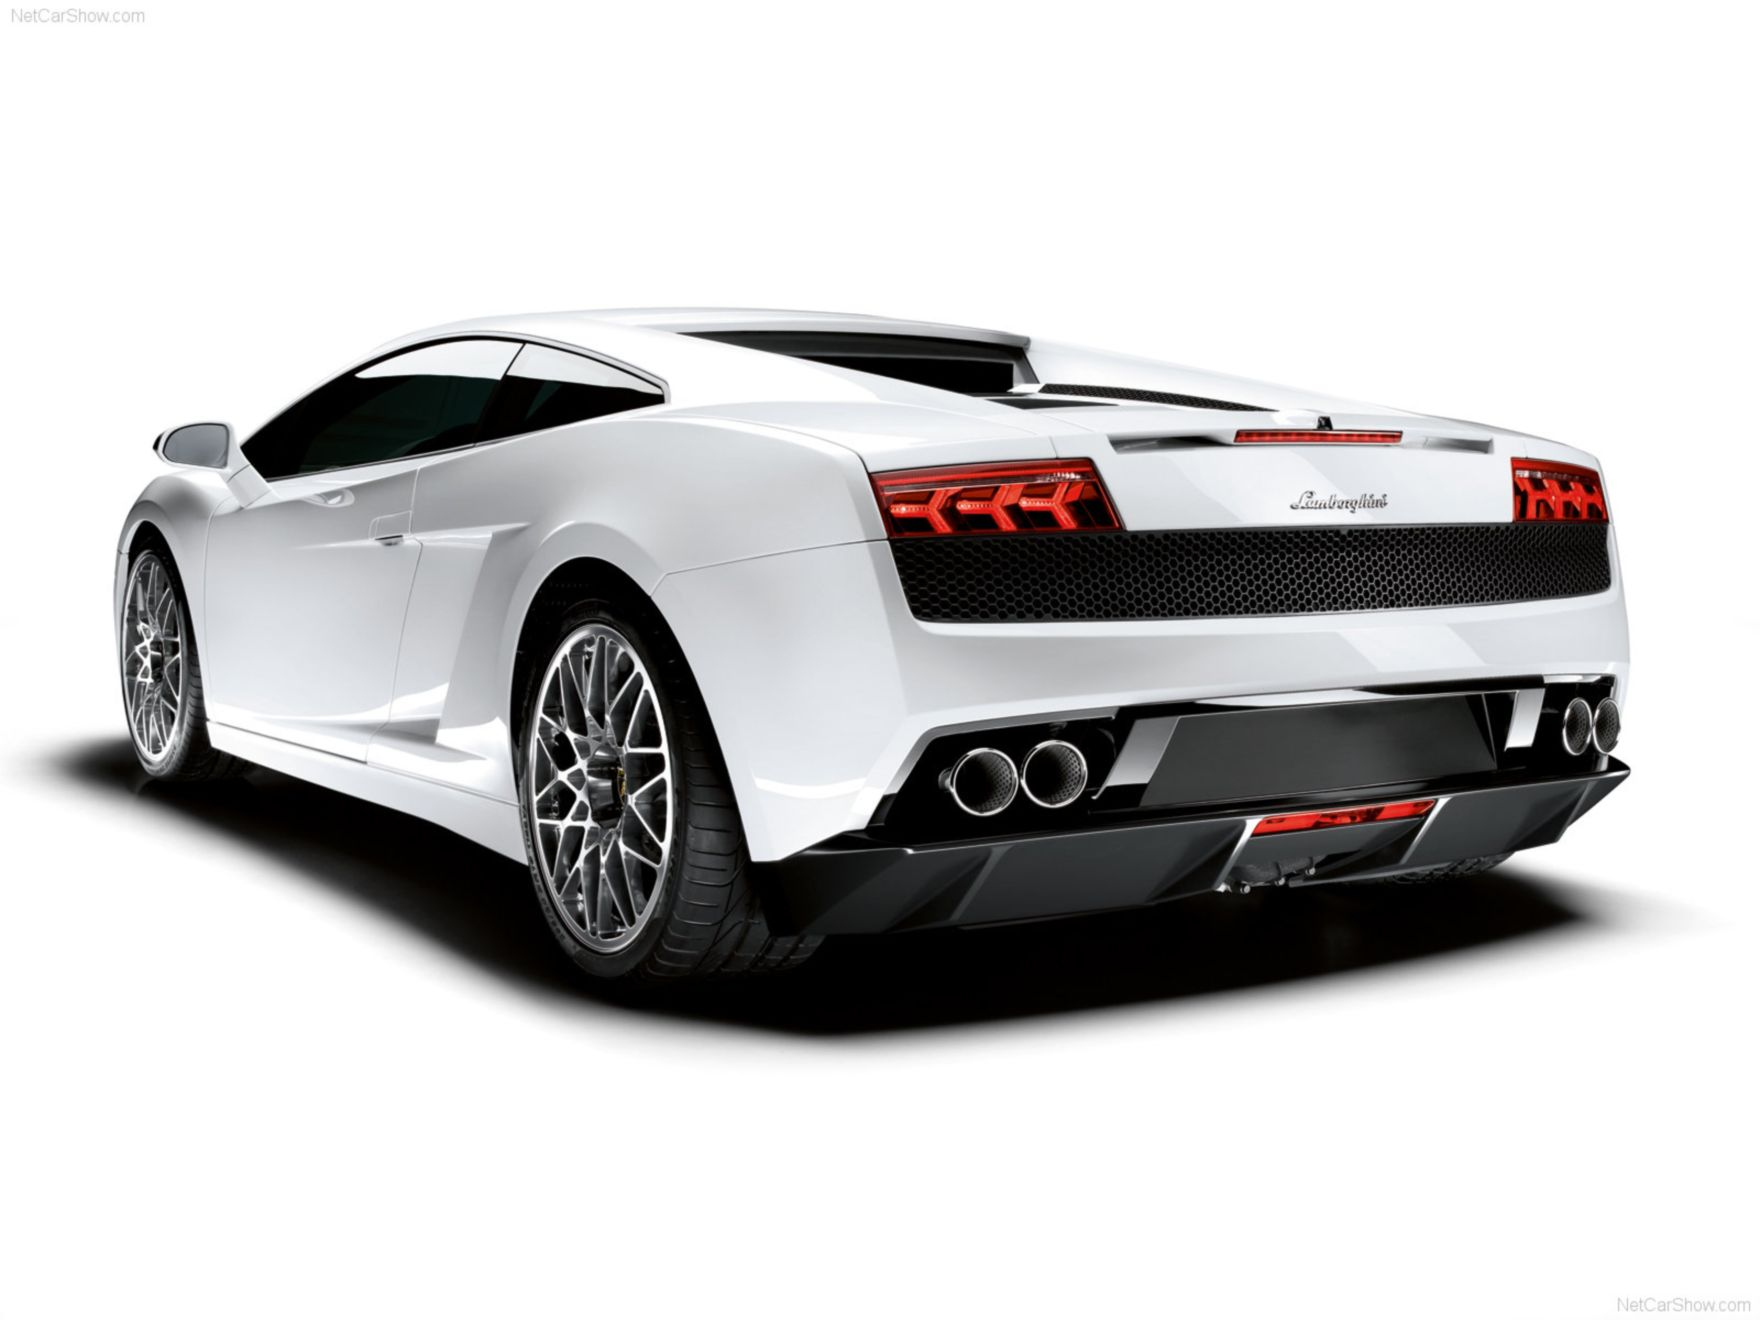 Download free HD Lamborghini Gallardo LP Normal Wallpaper, image